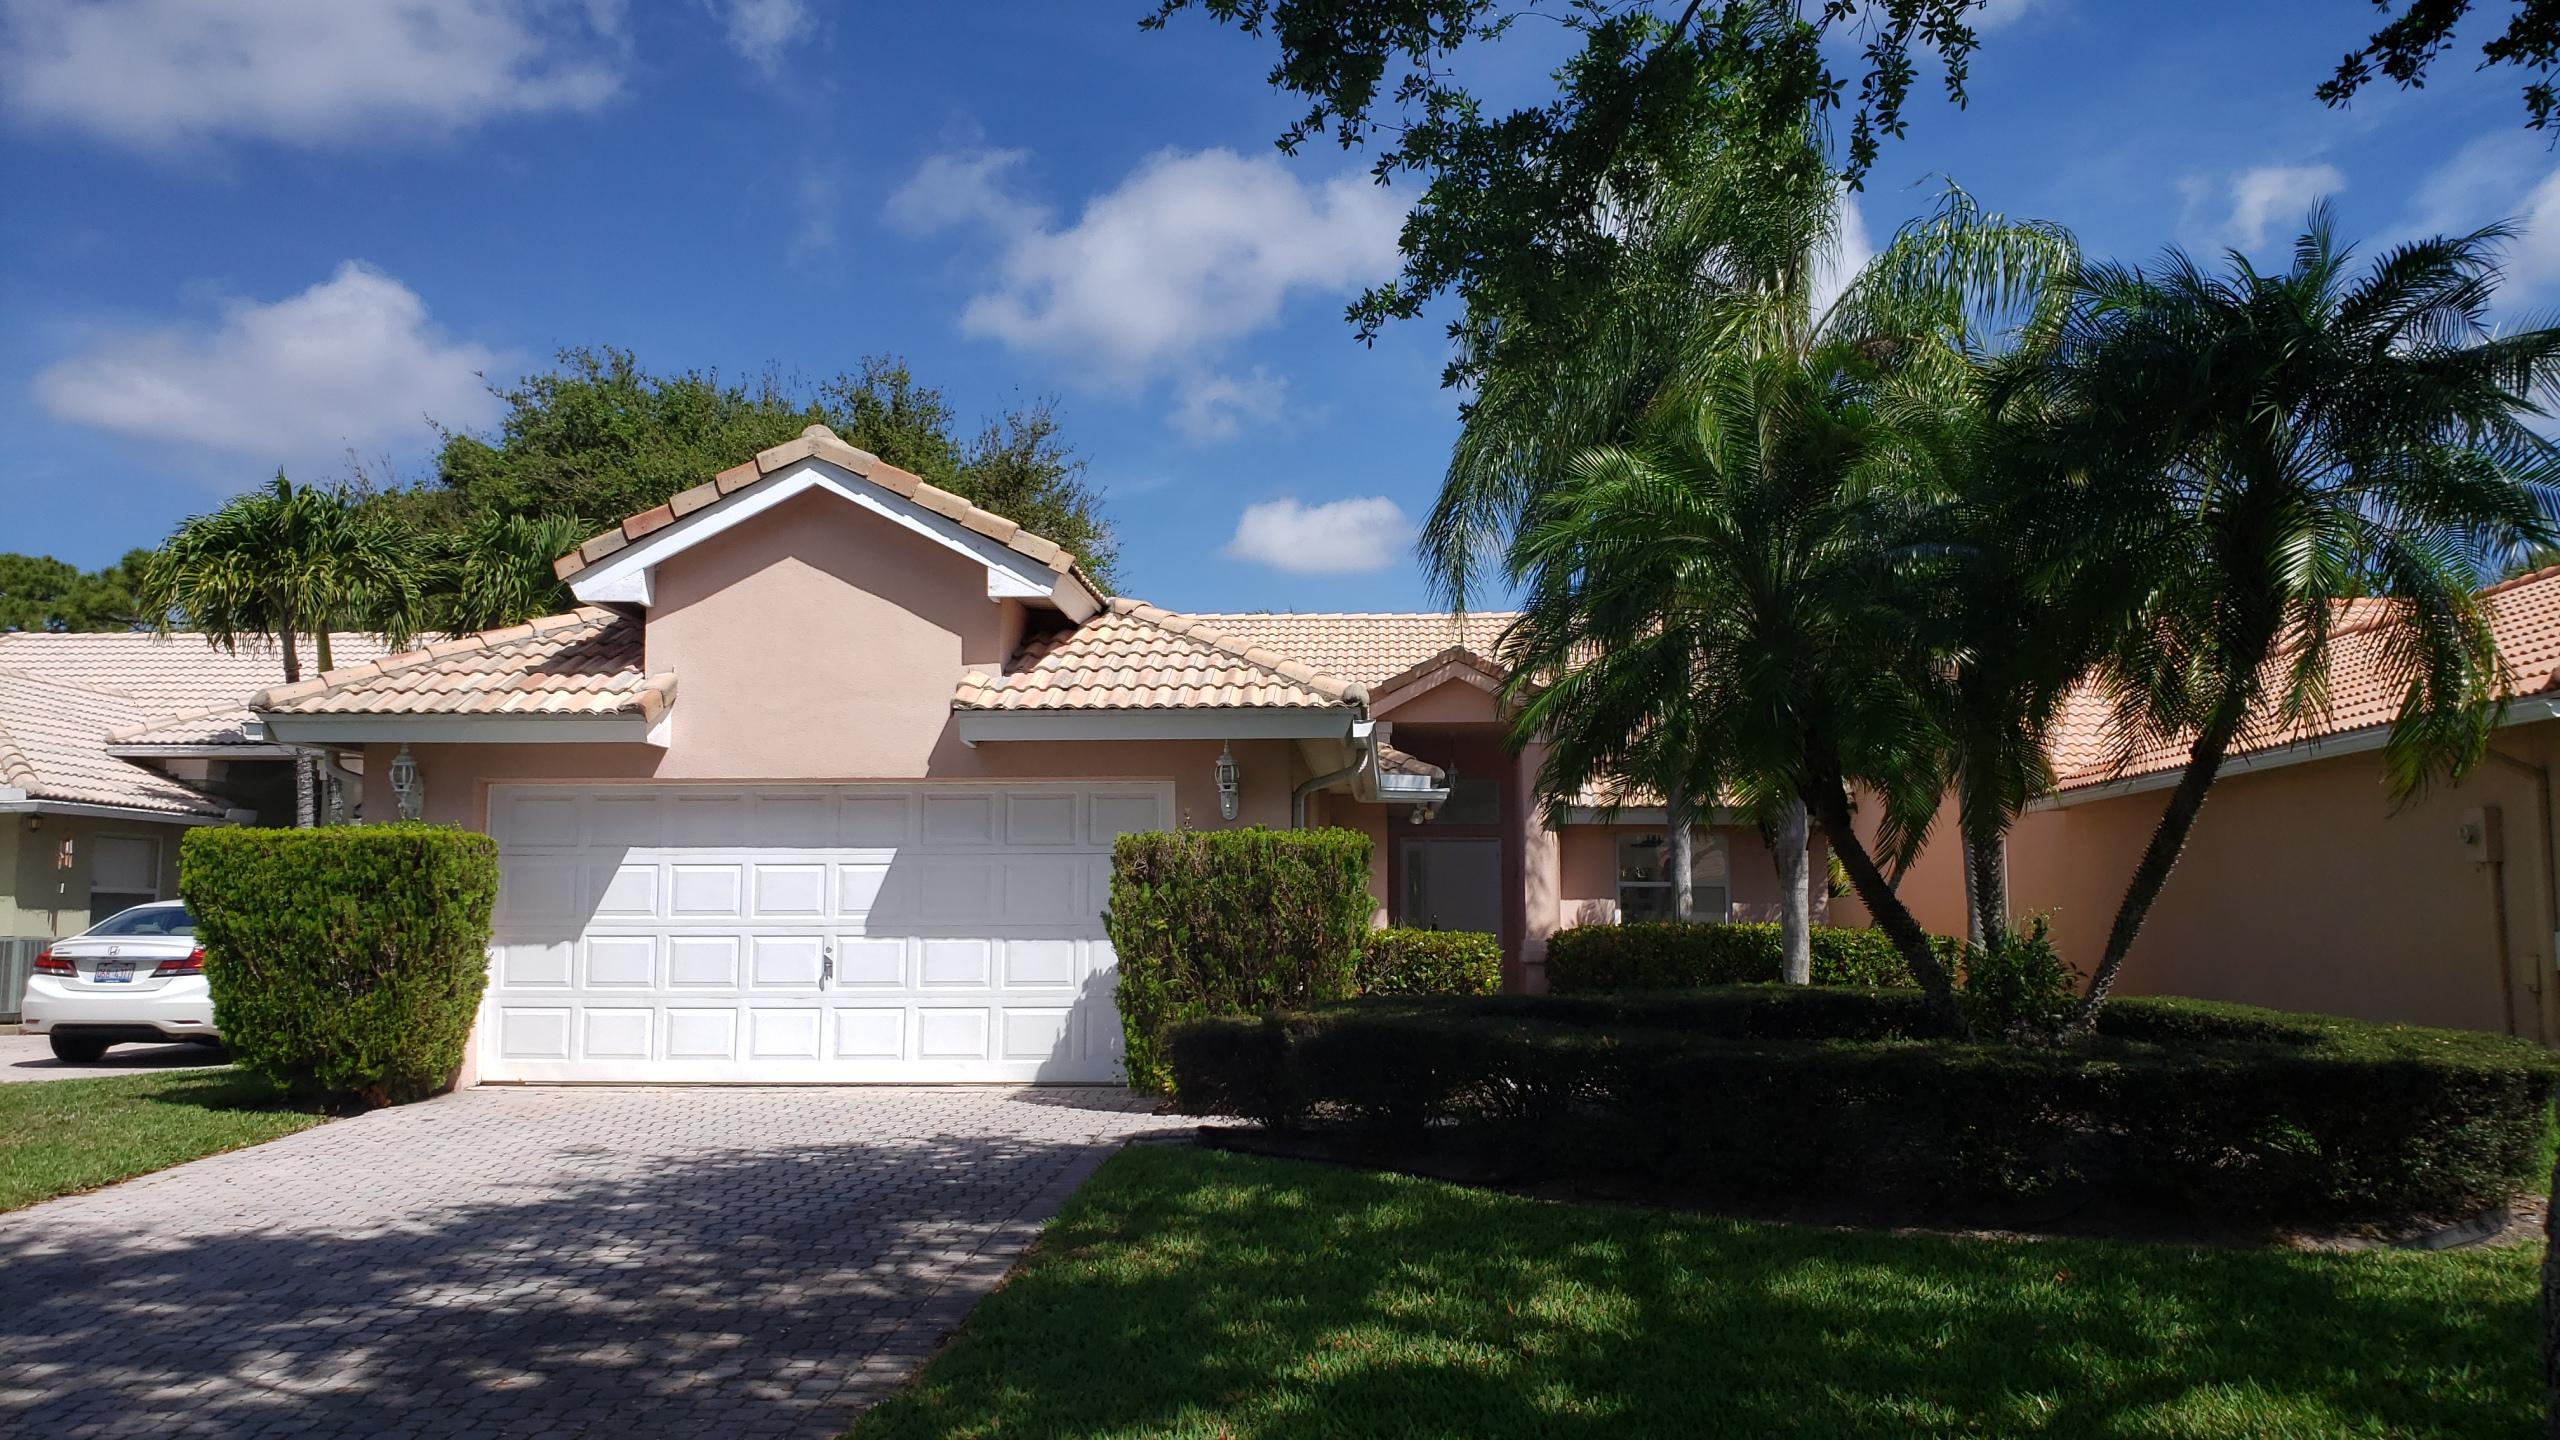 Home for sale in Palm Beach & Tennis Homeowners Association Delray Beach Florida